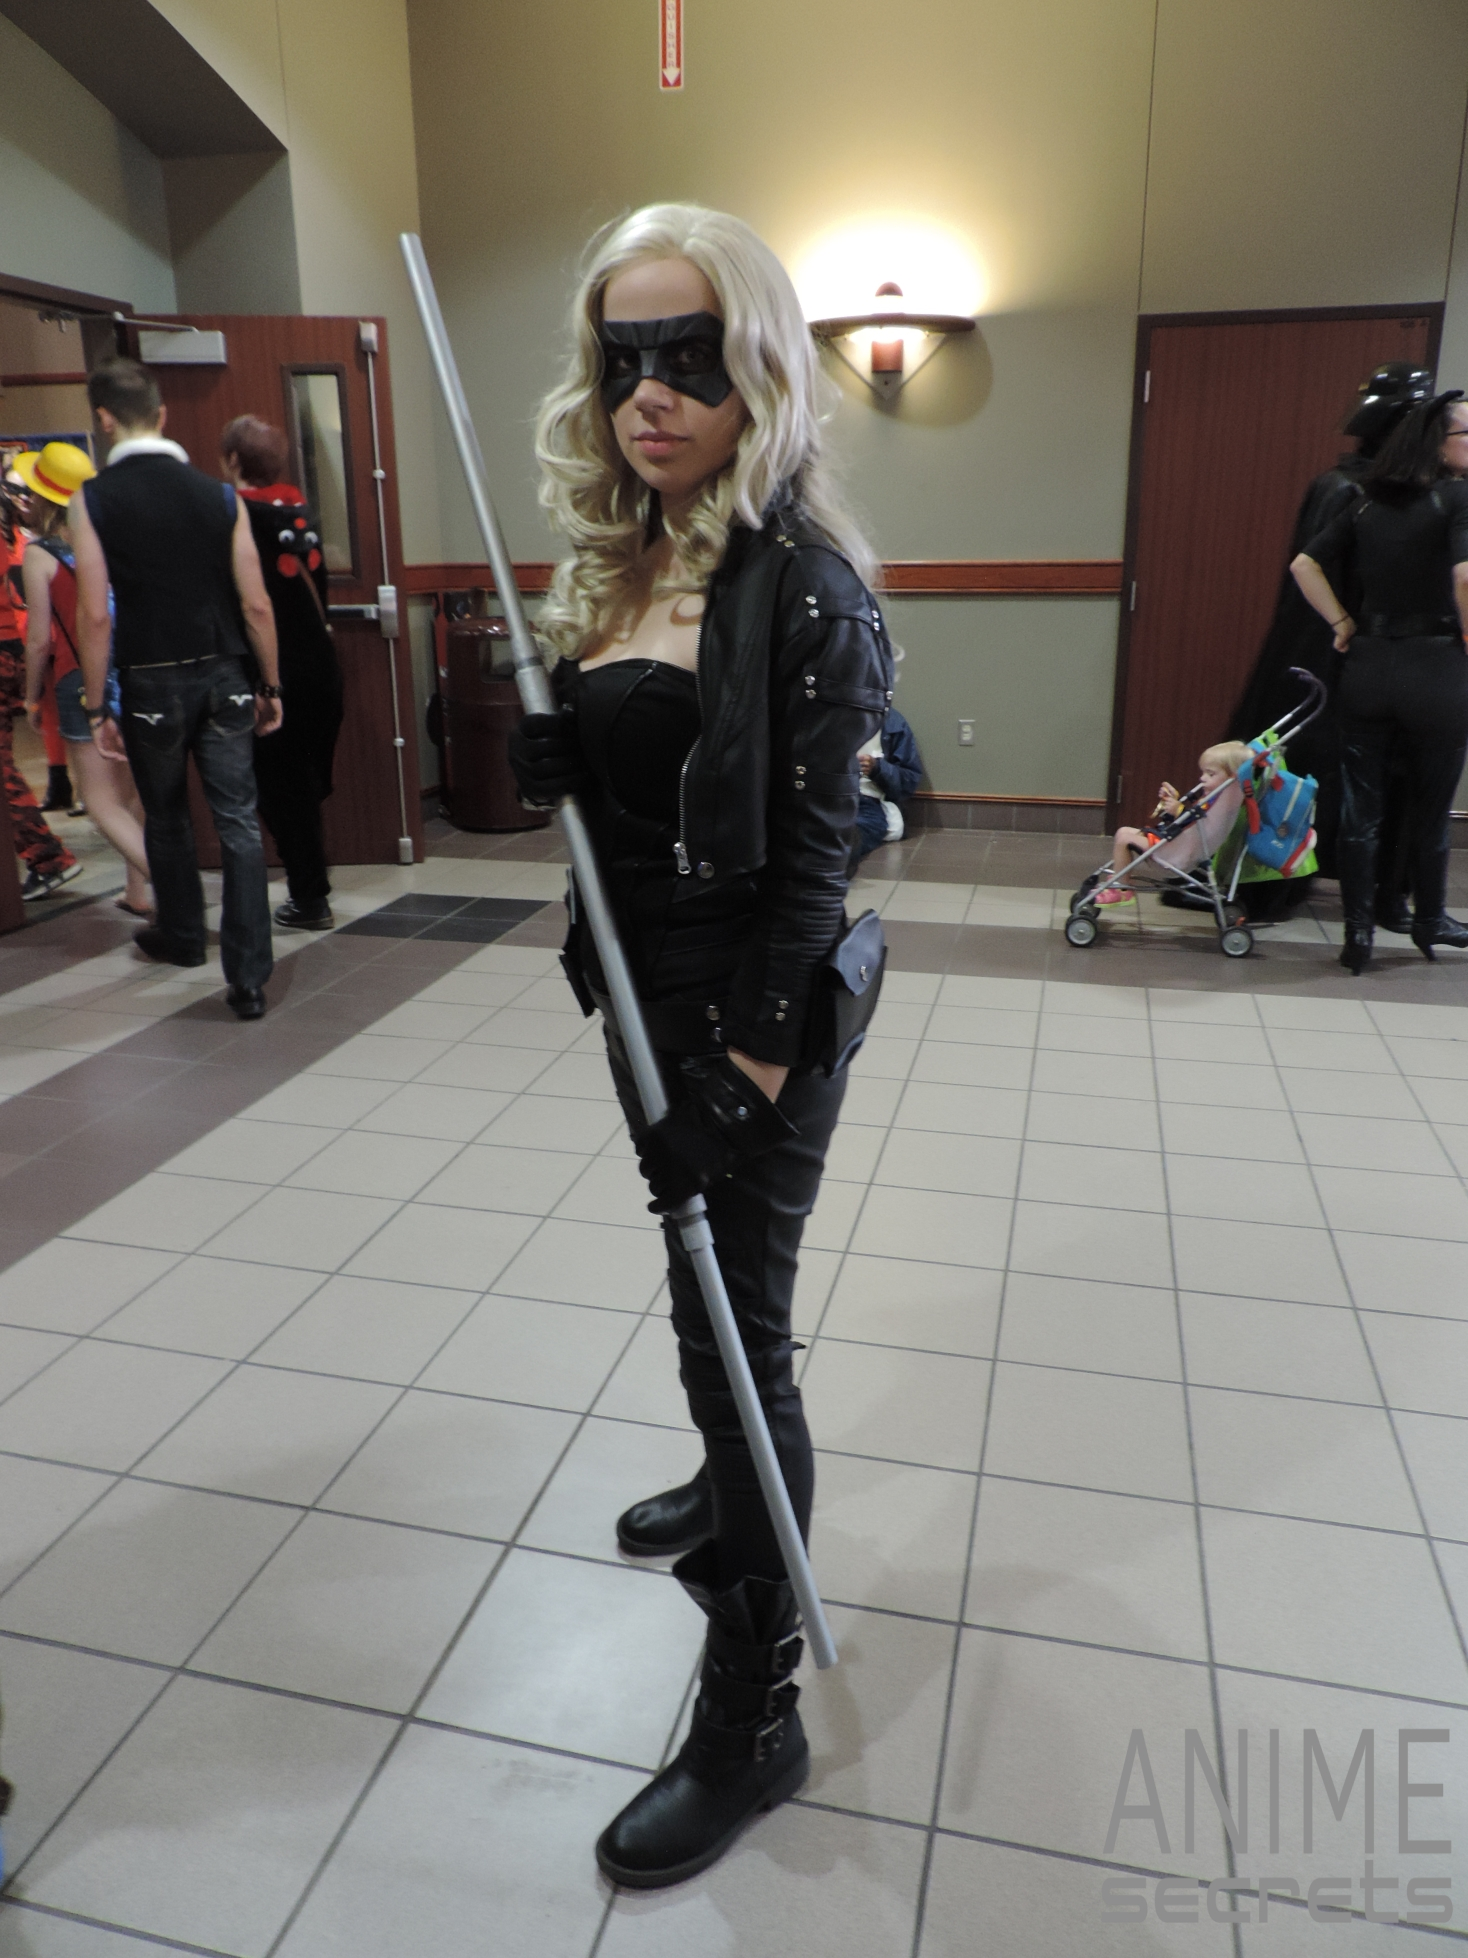 Louisiana Comic Con 2015: Lafayette – Photo Gallery